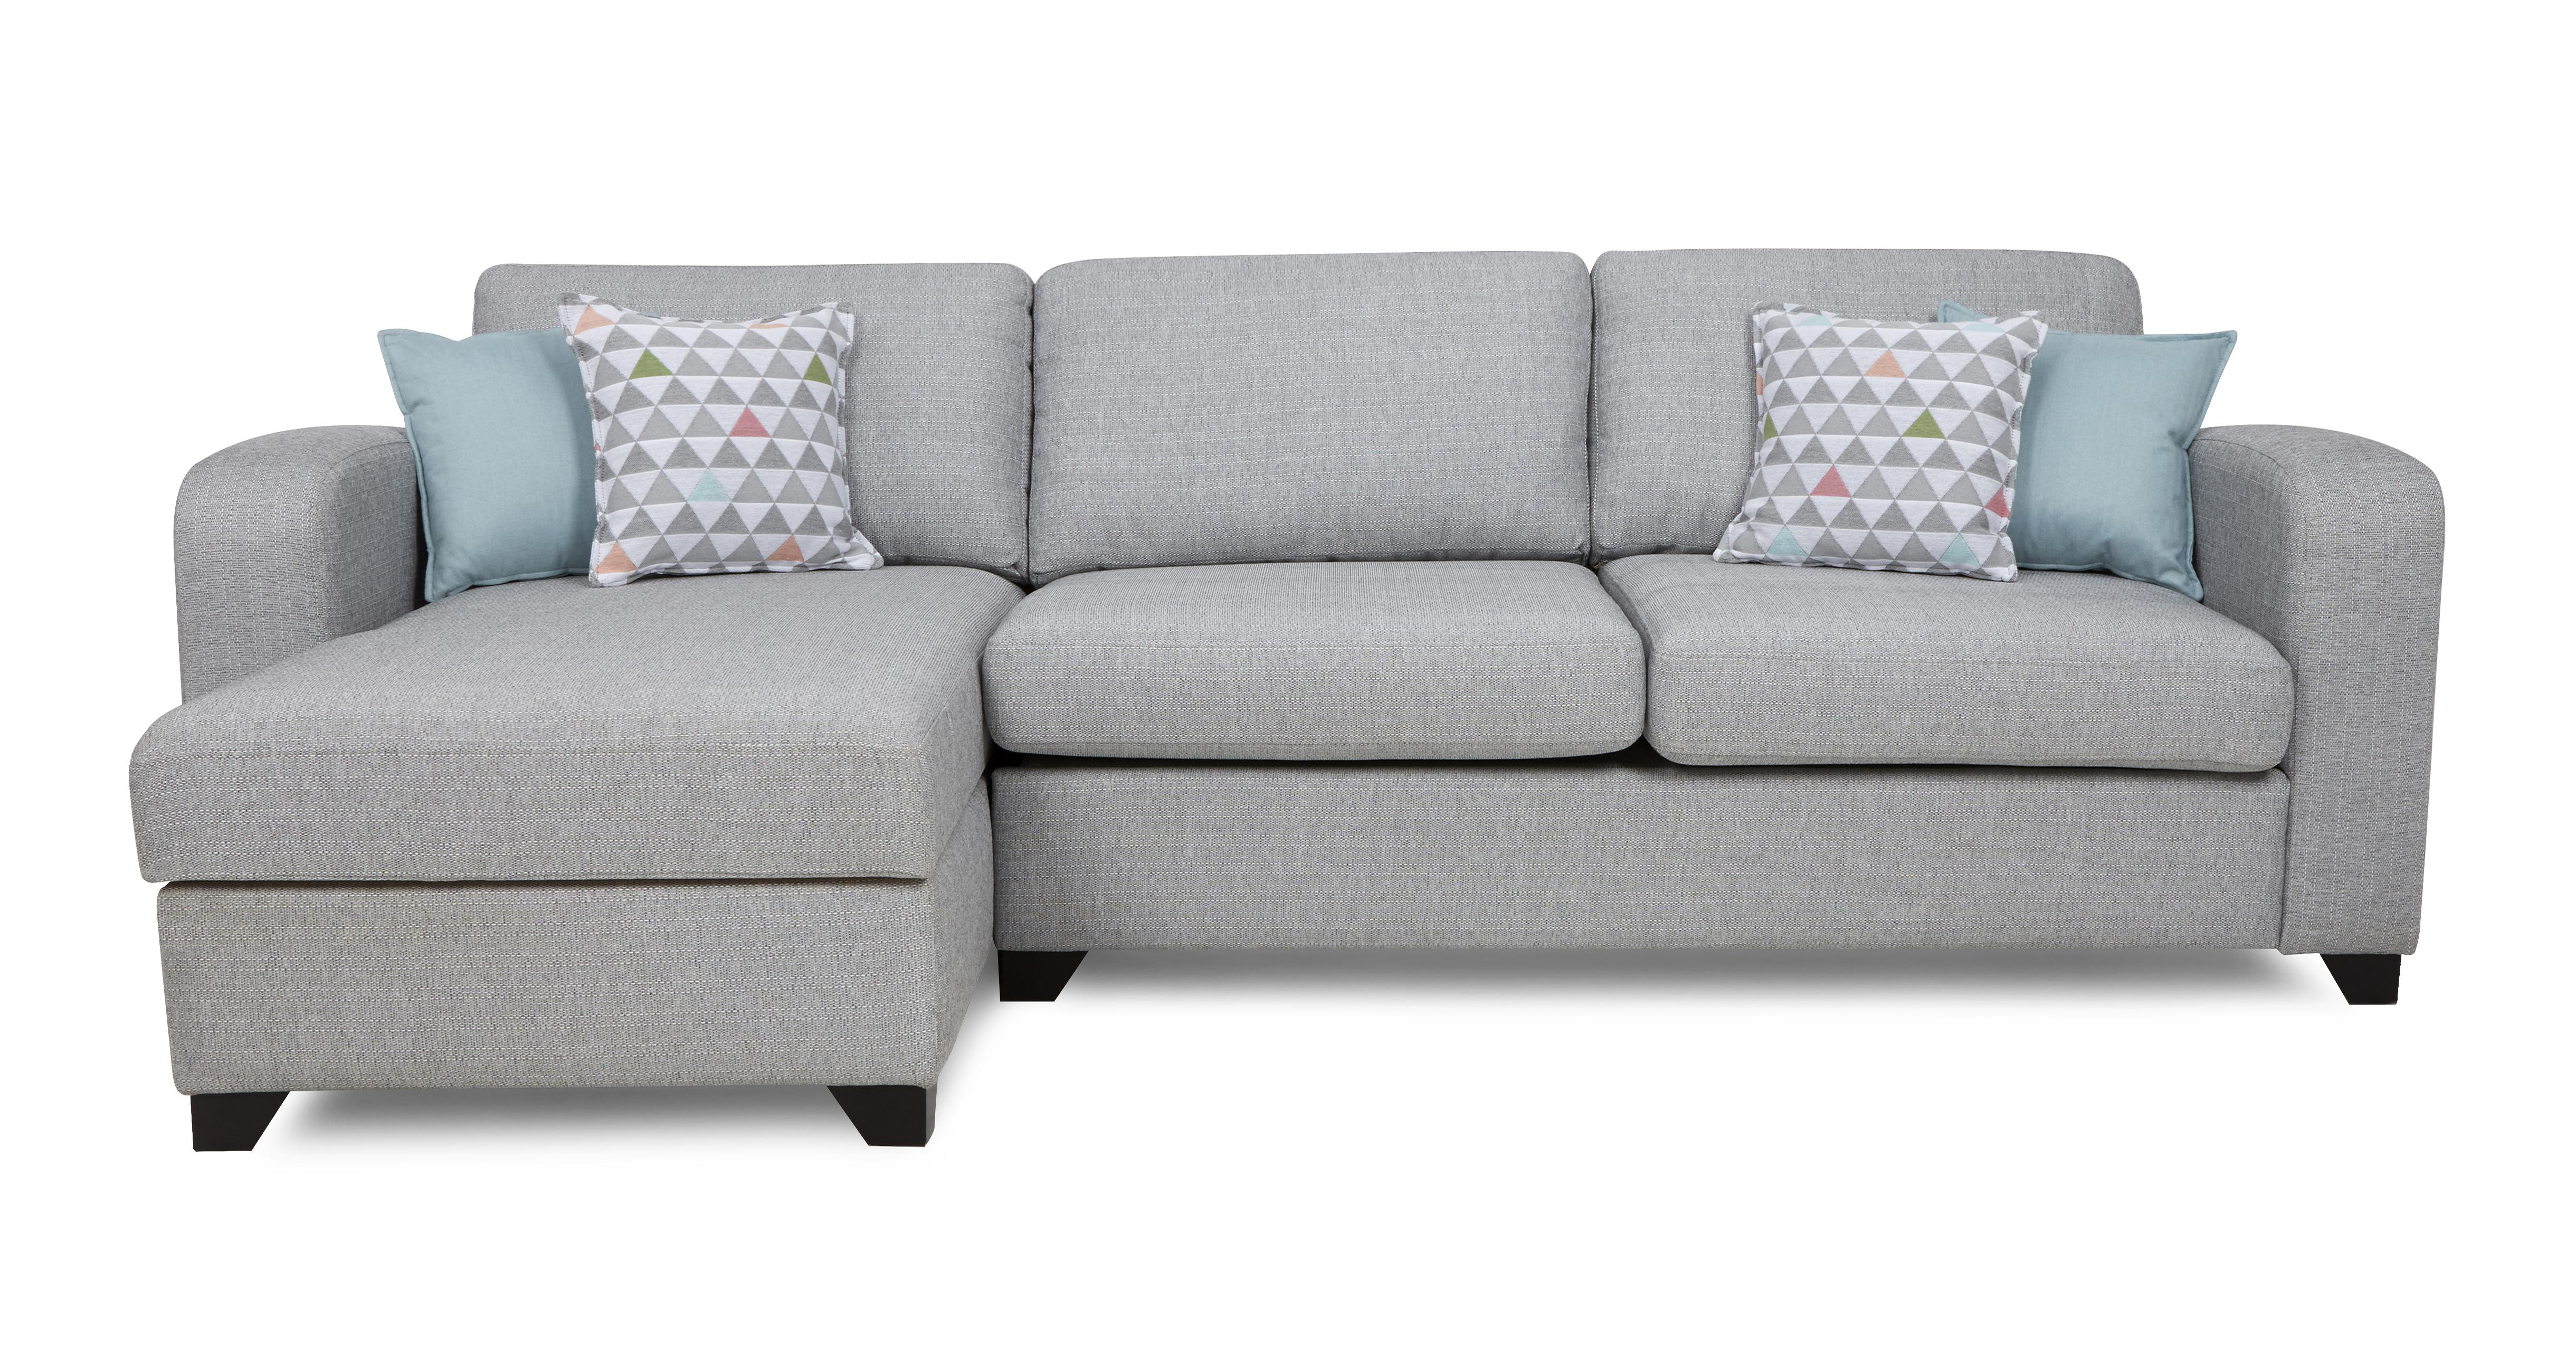 Lydia Left Hand Facing Chaise End 3 Seater Sofa  DFS Ireland